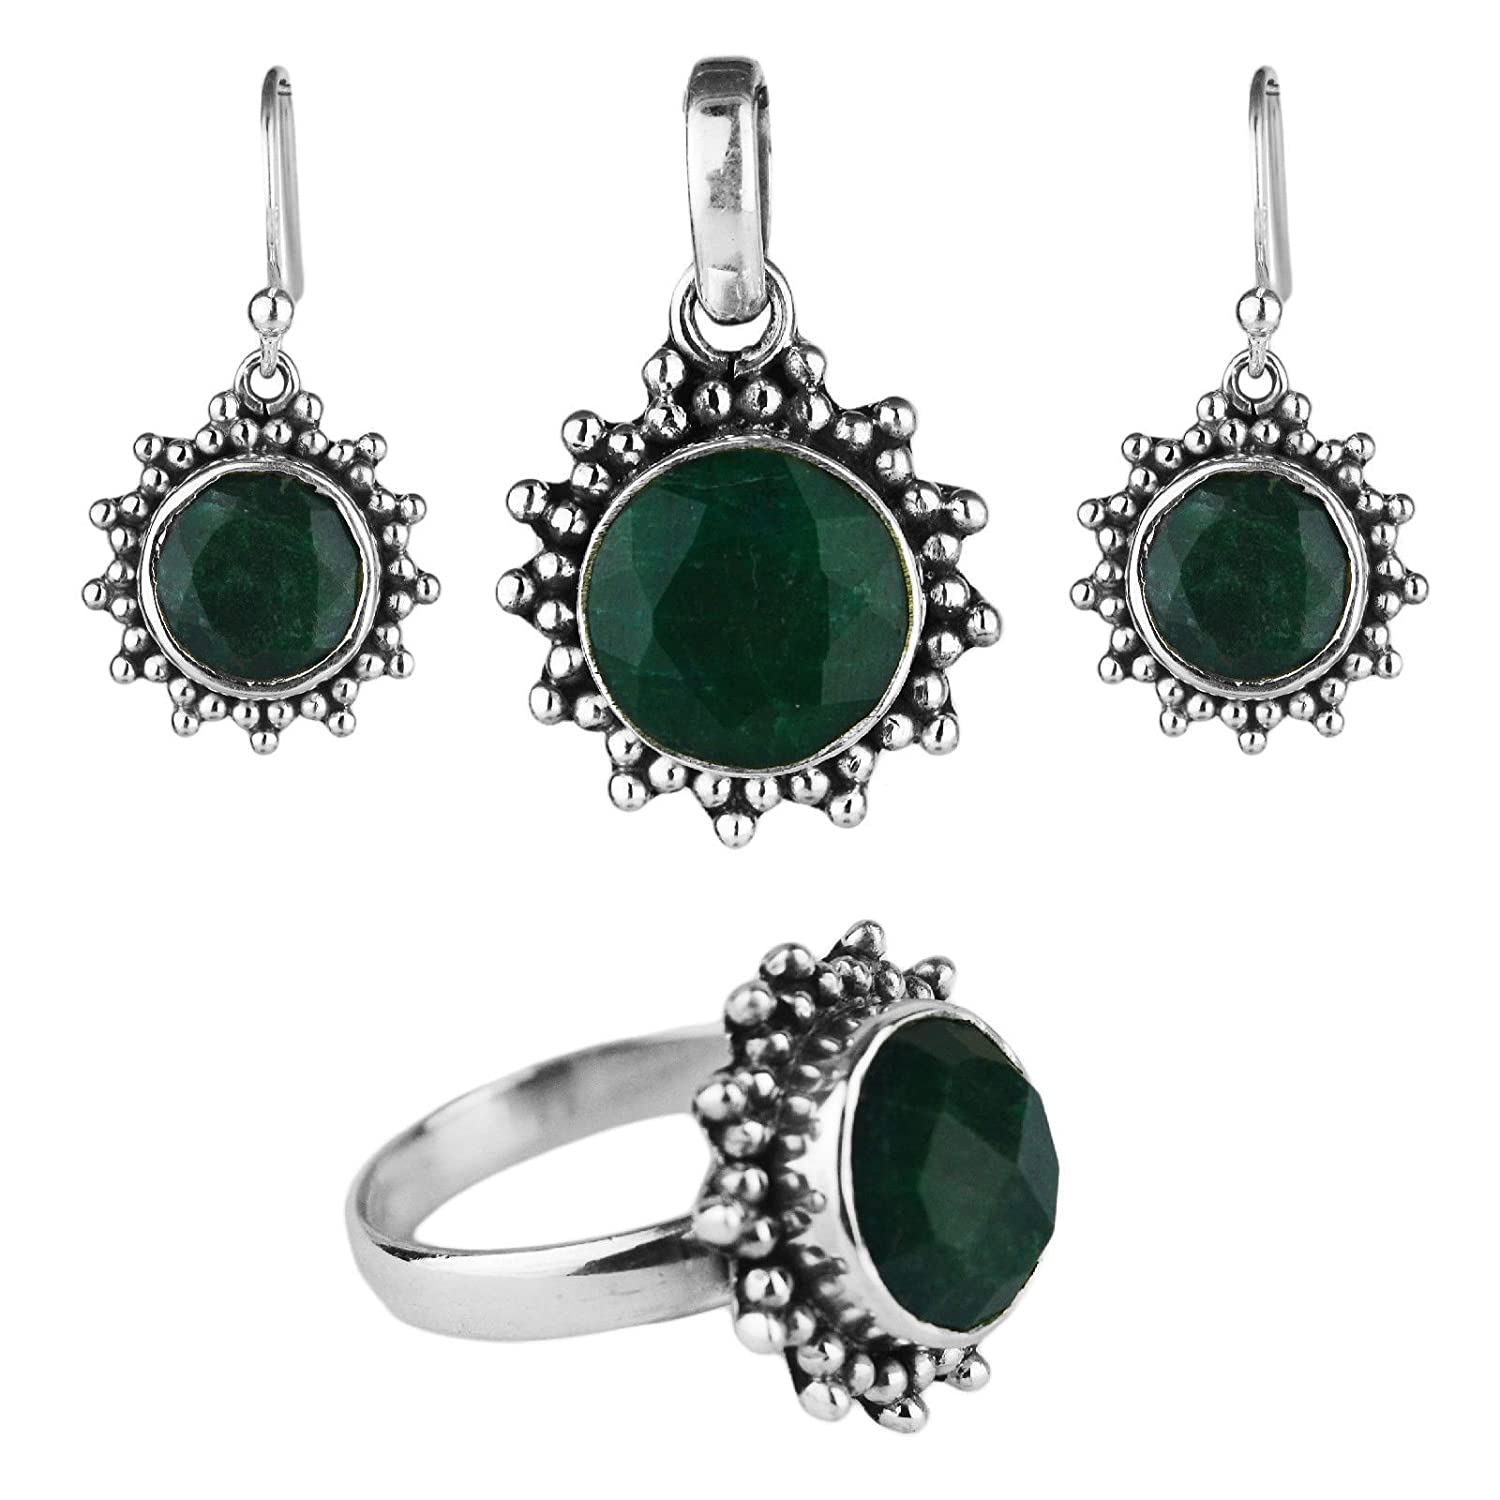 Crystalcraftindia Natural emerald gemstone jewelry set pendant ring earring sterling silver 12.21 gms